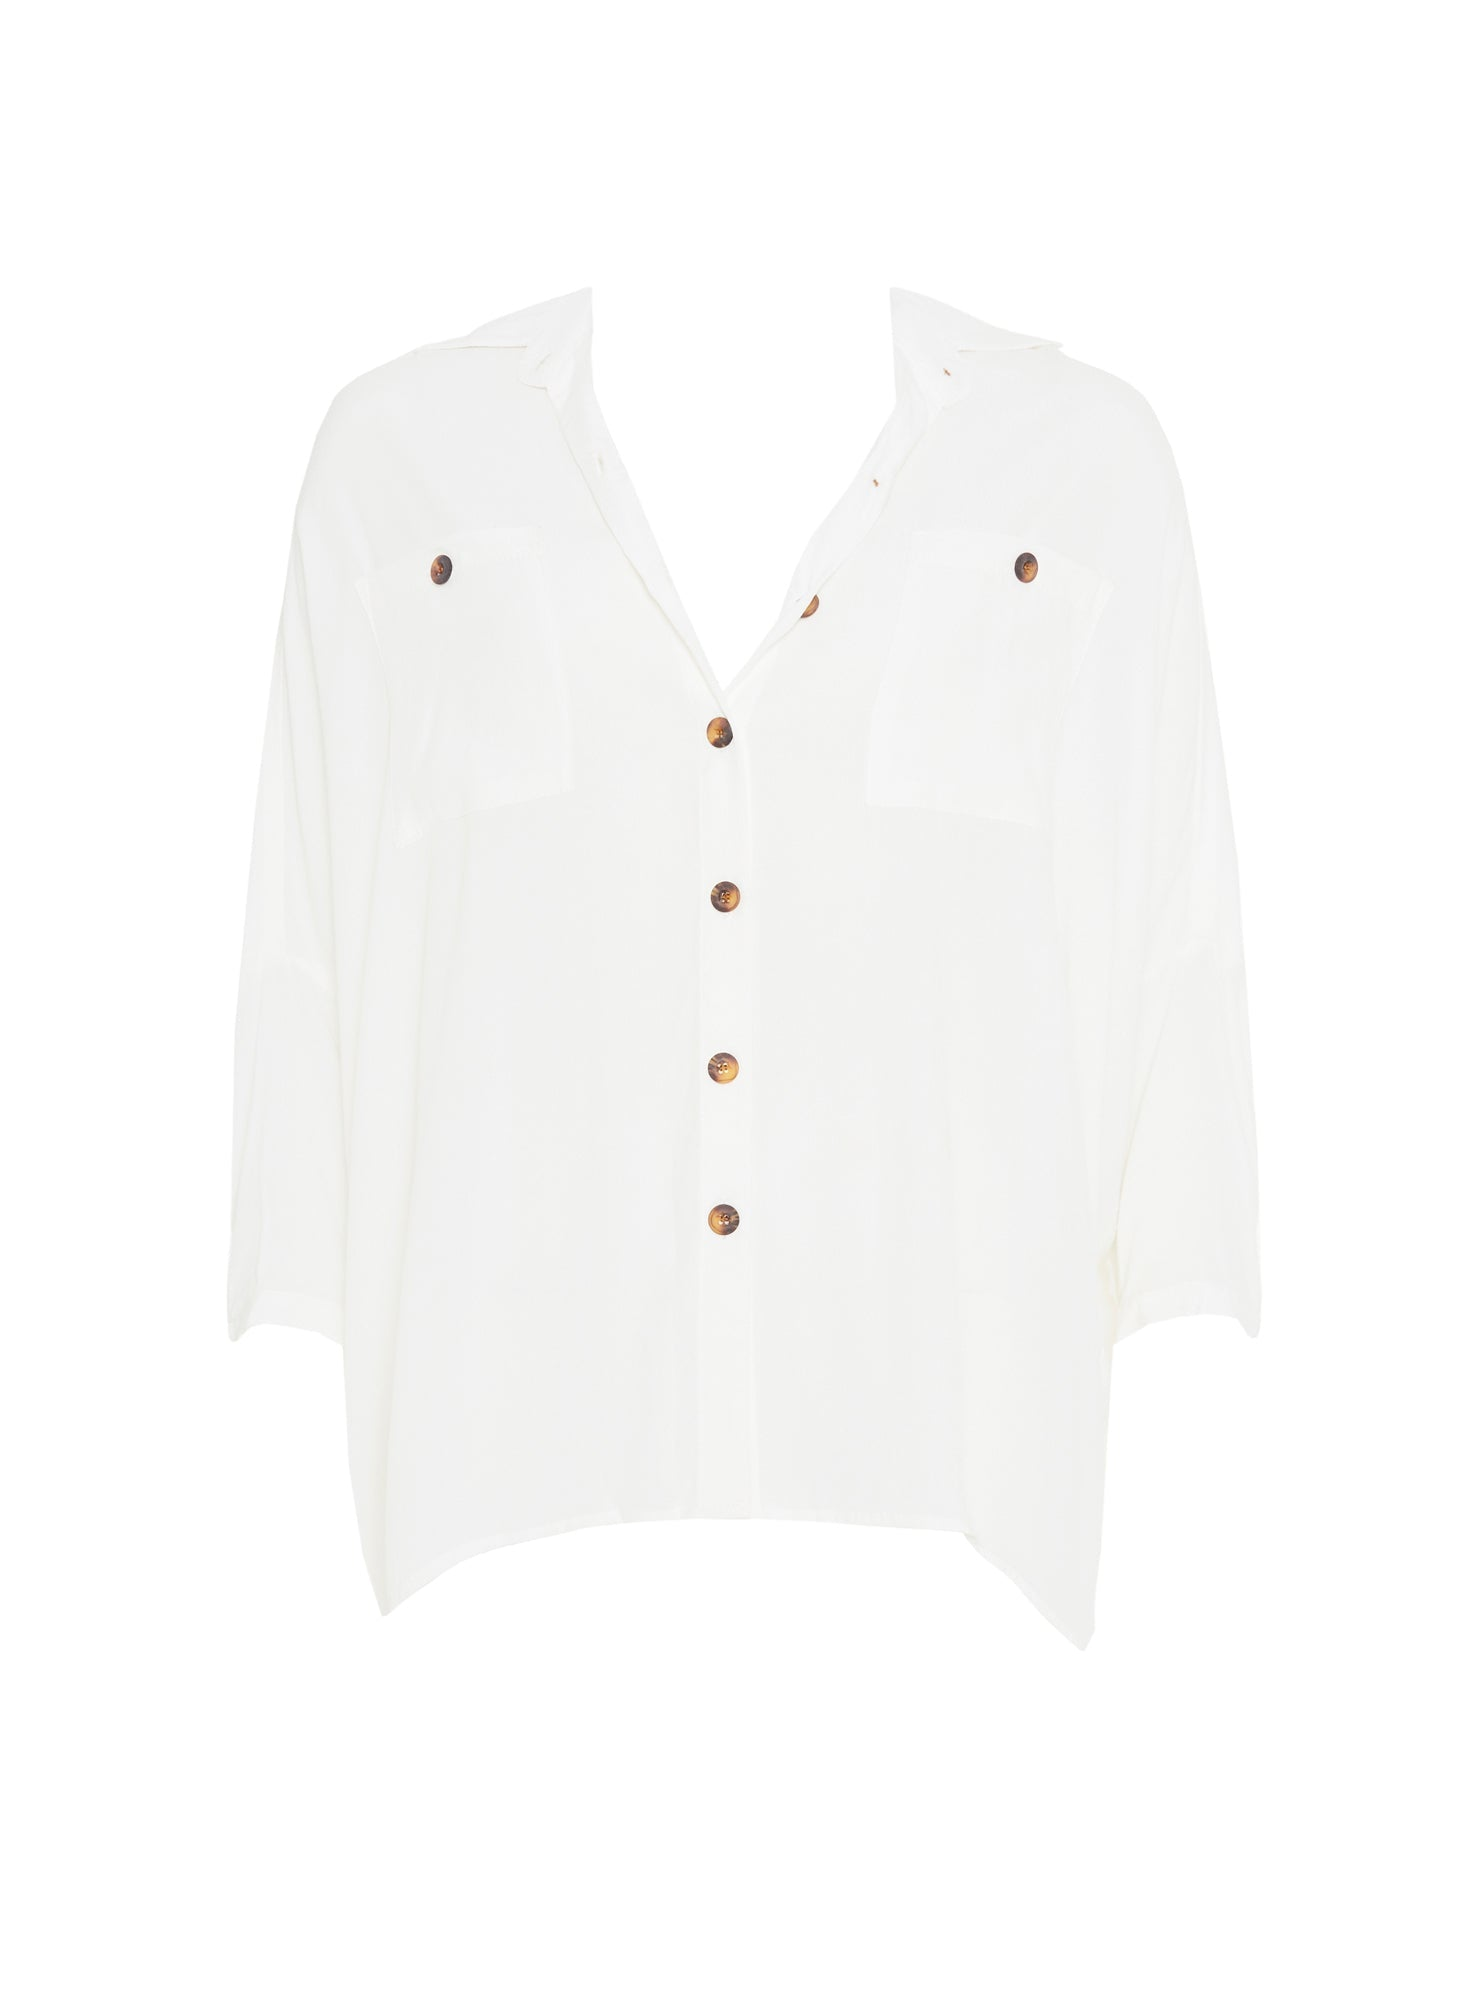 PLAIN WHITE - LUMA SHIRT